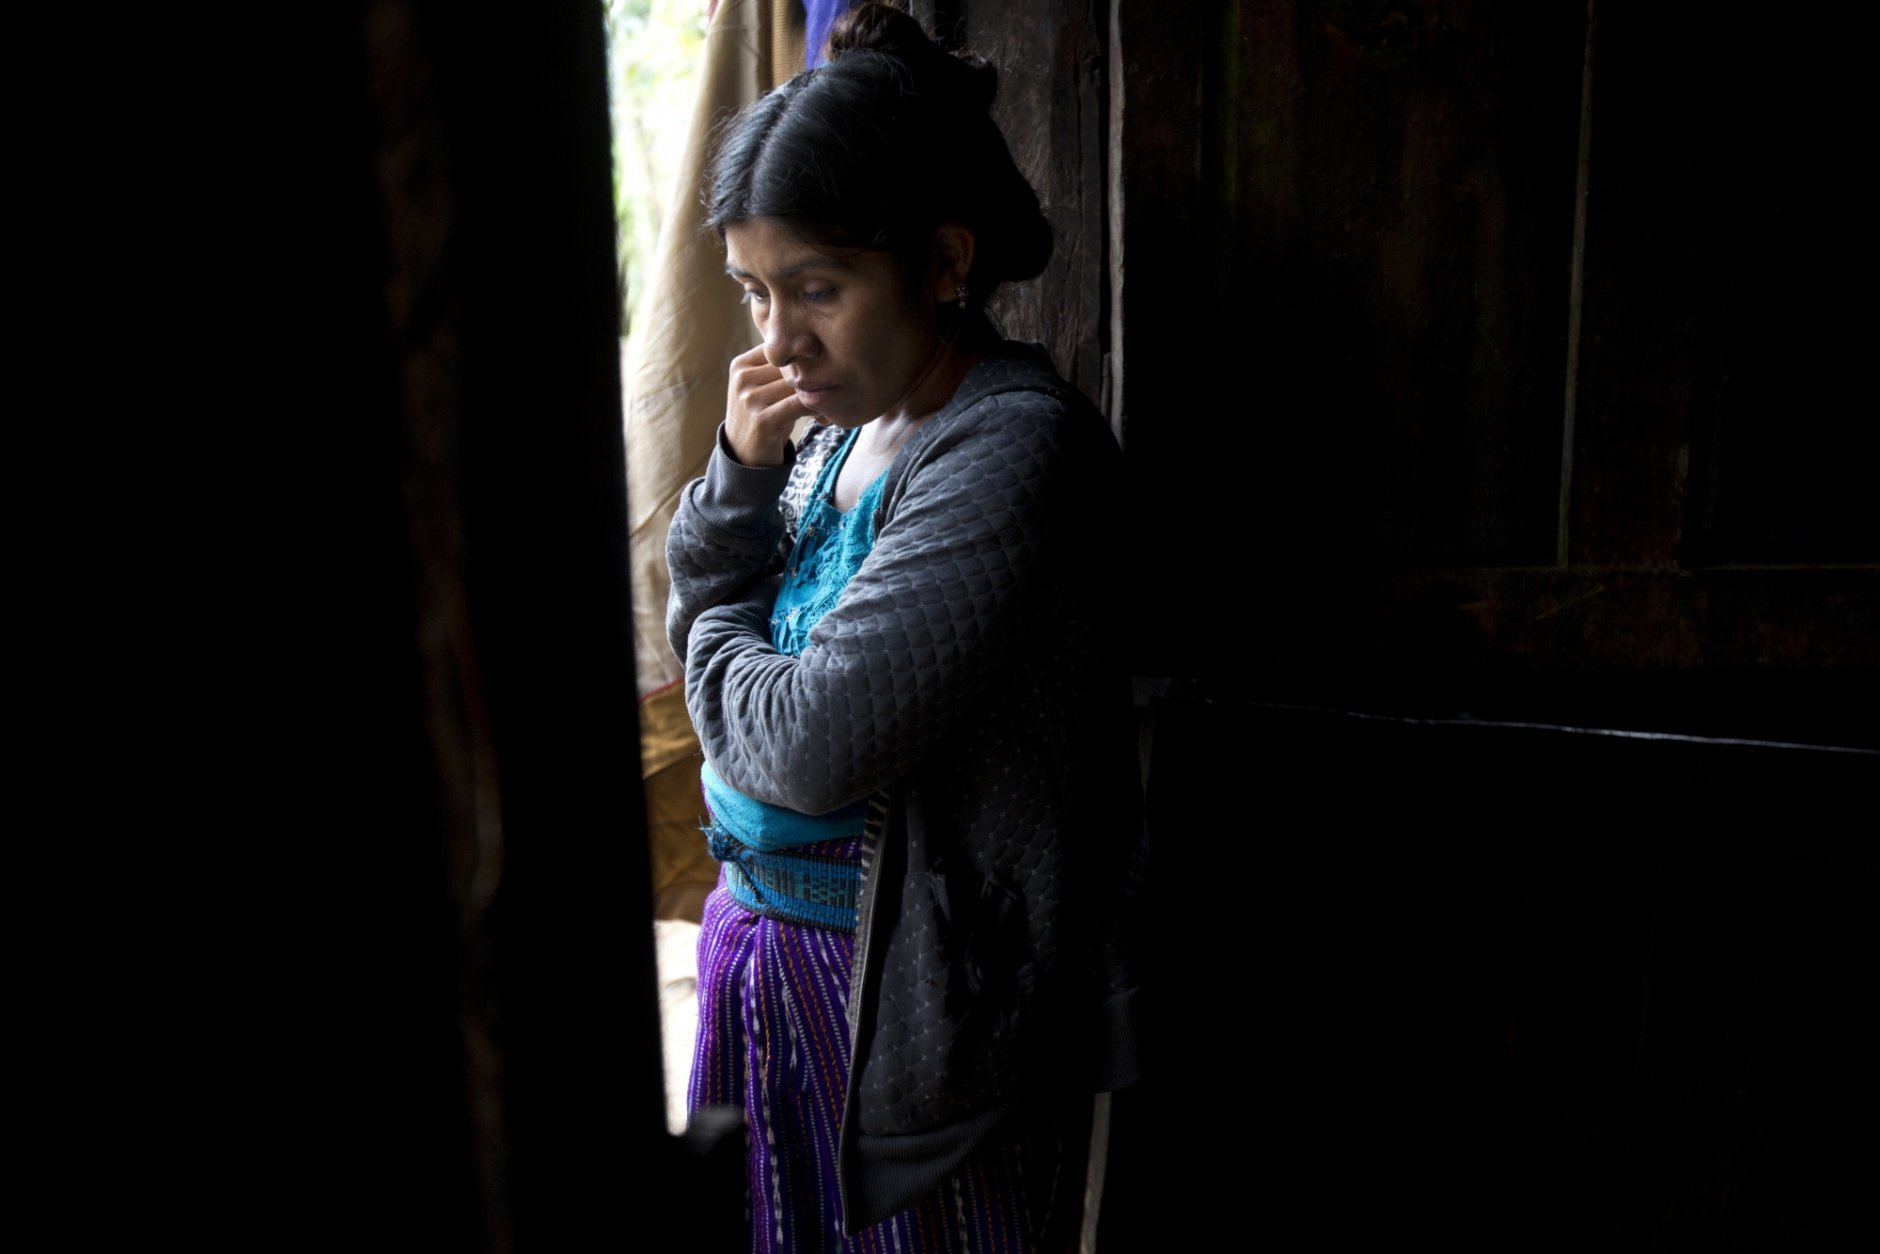 Catarina Alonzo Perez, mother of the second Guatemalan child this month to die while in U.S. custody, stands in her kitchen in Yalambojoch, Guatemala, Saturday, Dec. 29, 2018. Felipe was healthy when they left, according to the family. The last time he spoke with his mother was a day before they were taken into detention by border agents. Felipe told his mother that he was fine. (AP Photo/Moises Castillo)